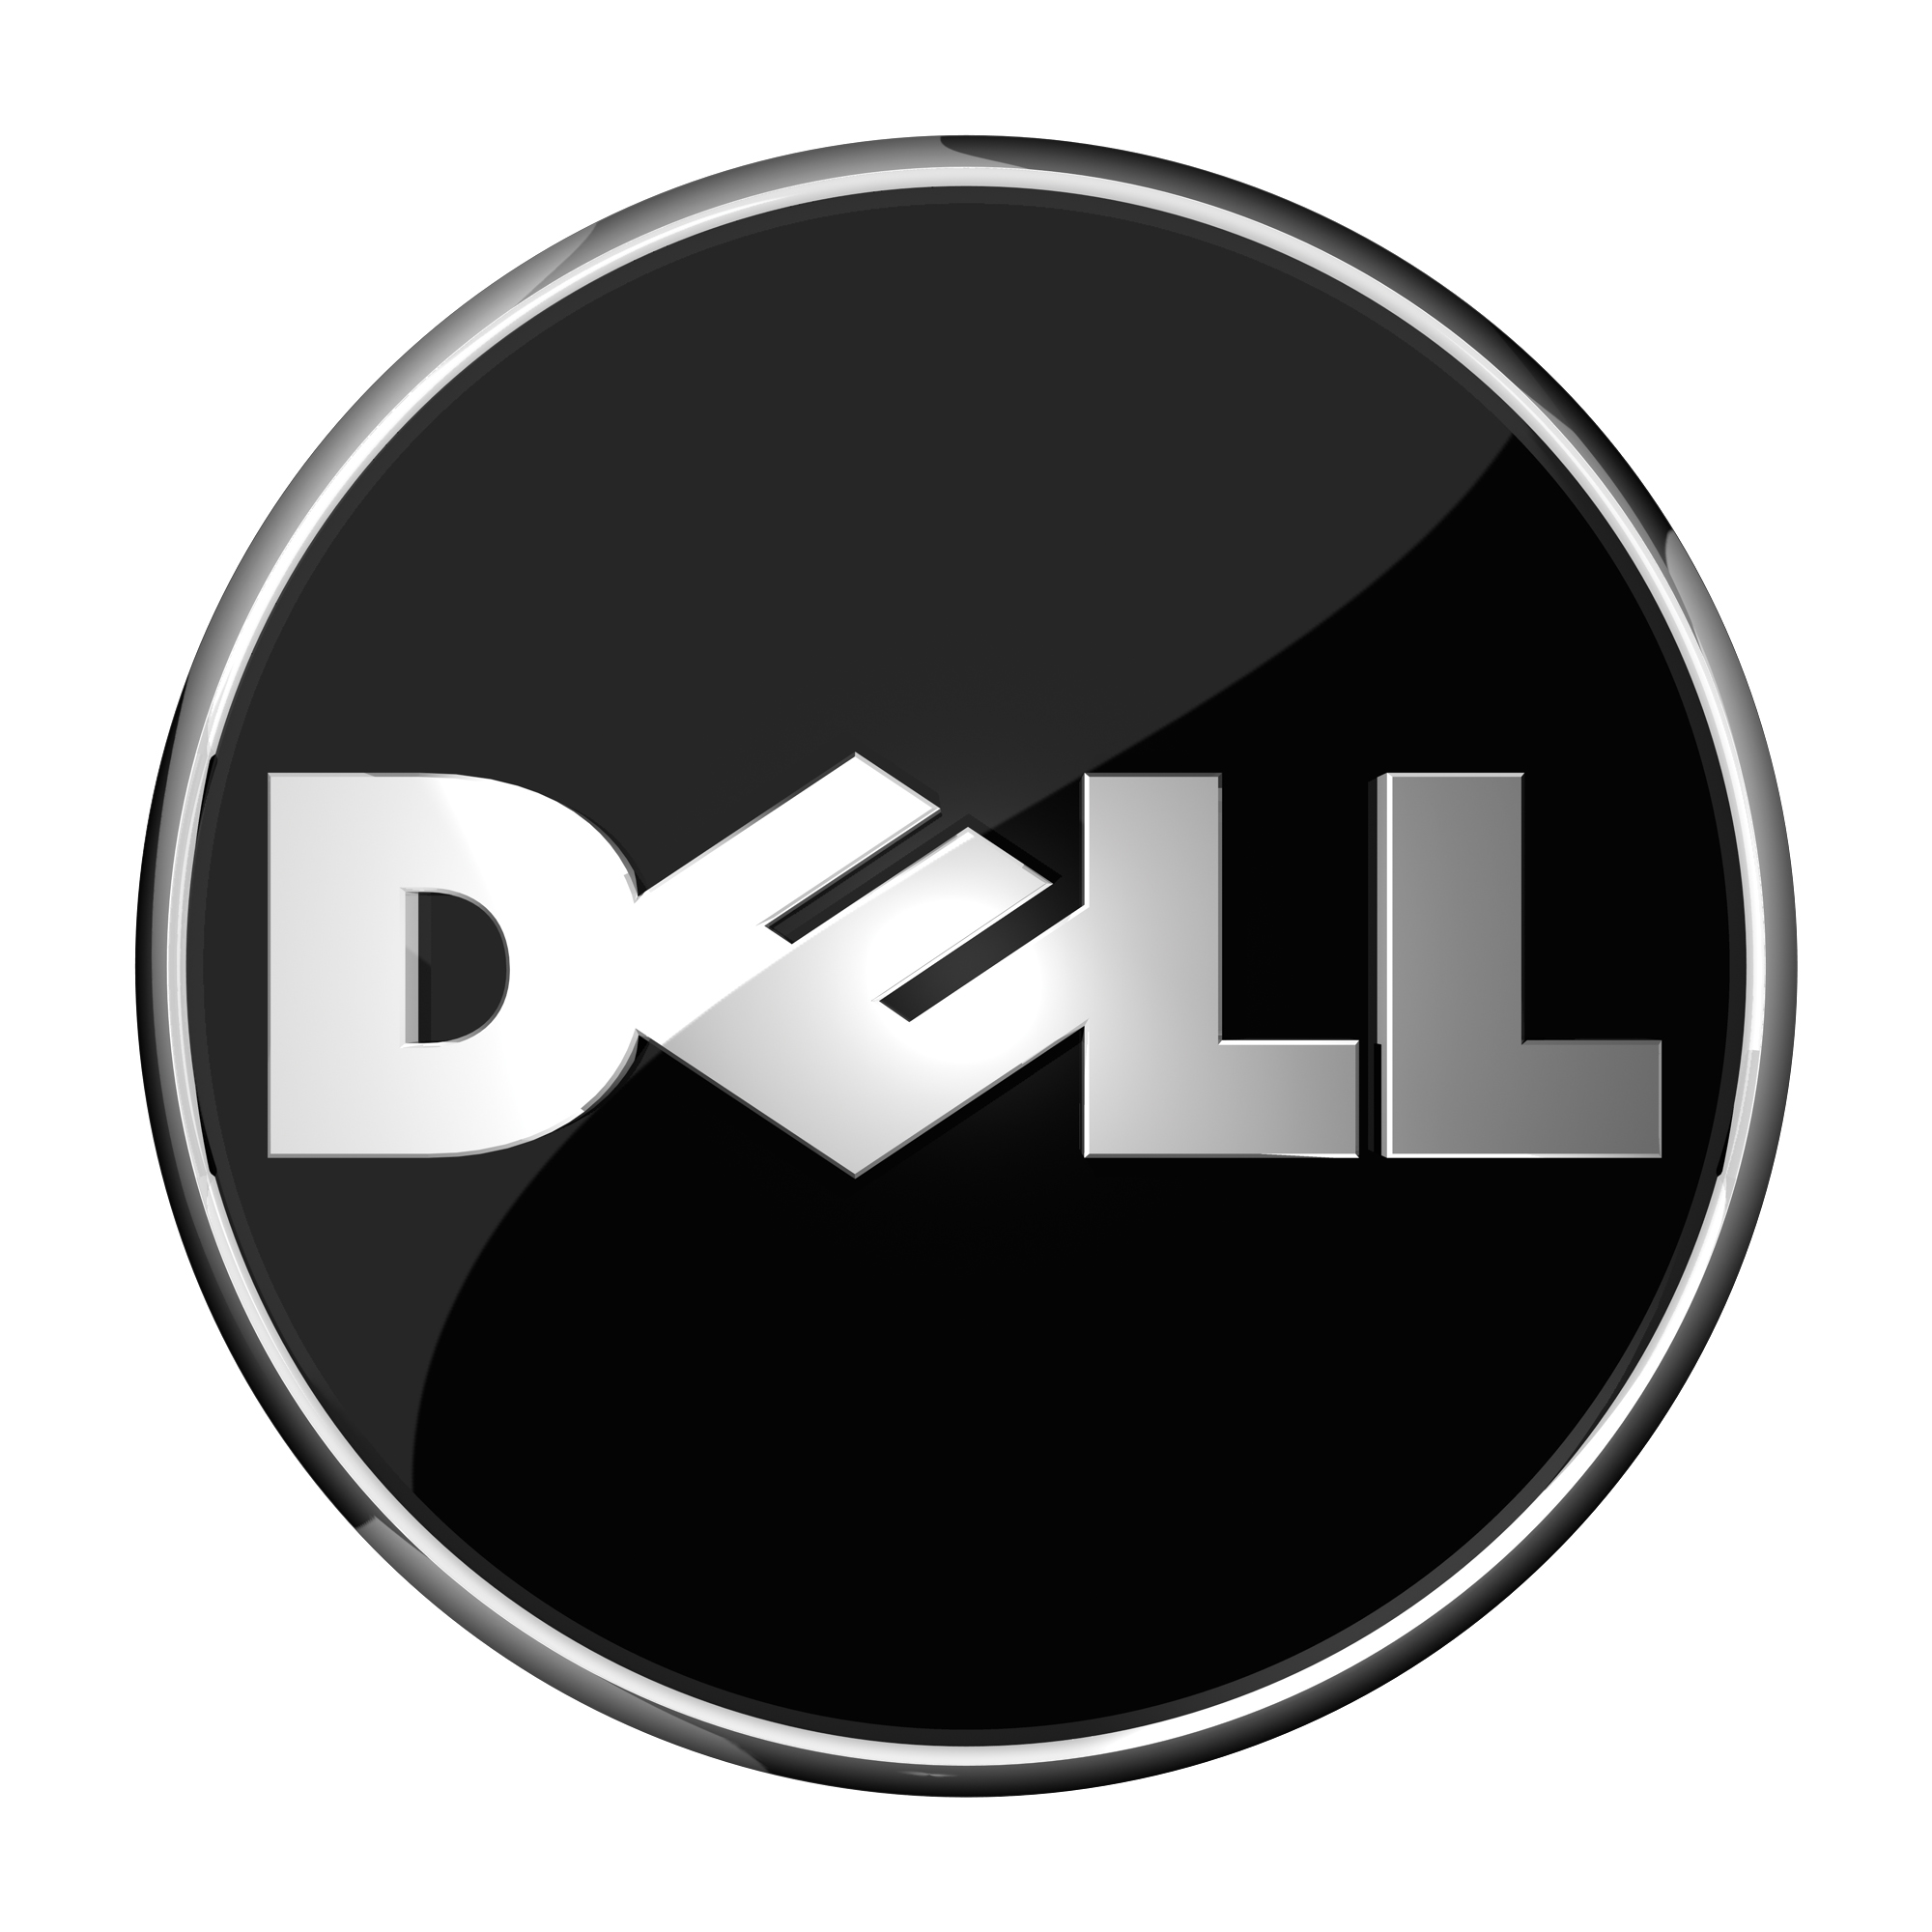 Png Dell Logo Transparent